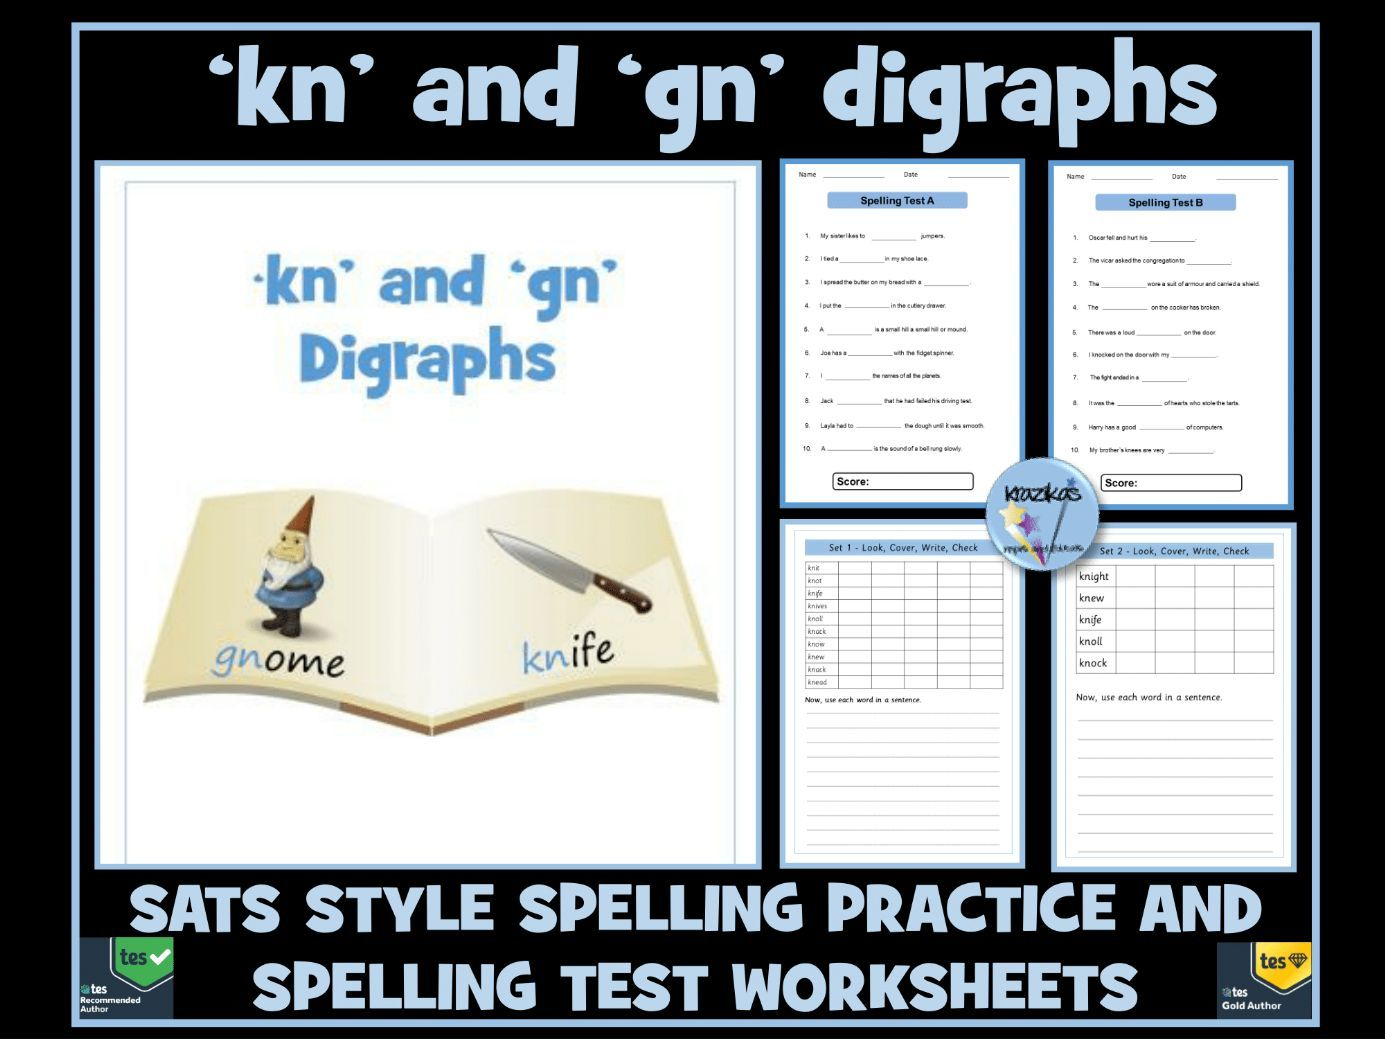 kn and gn digraphs: Spelling Practice and Spelling Tests